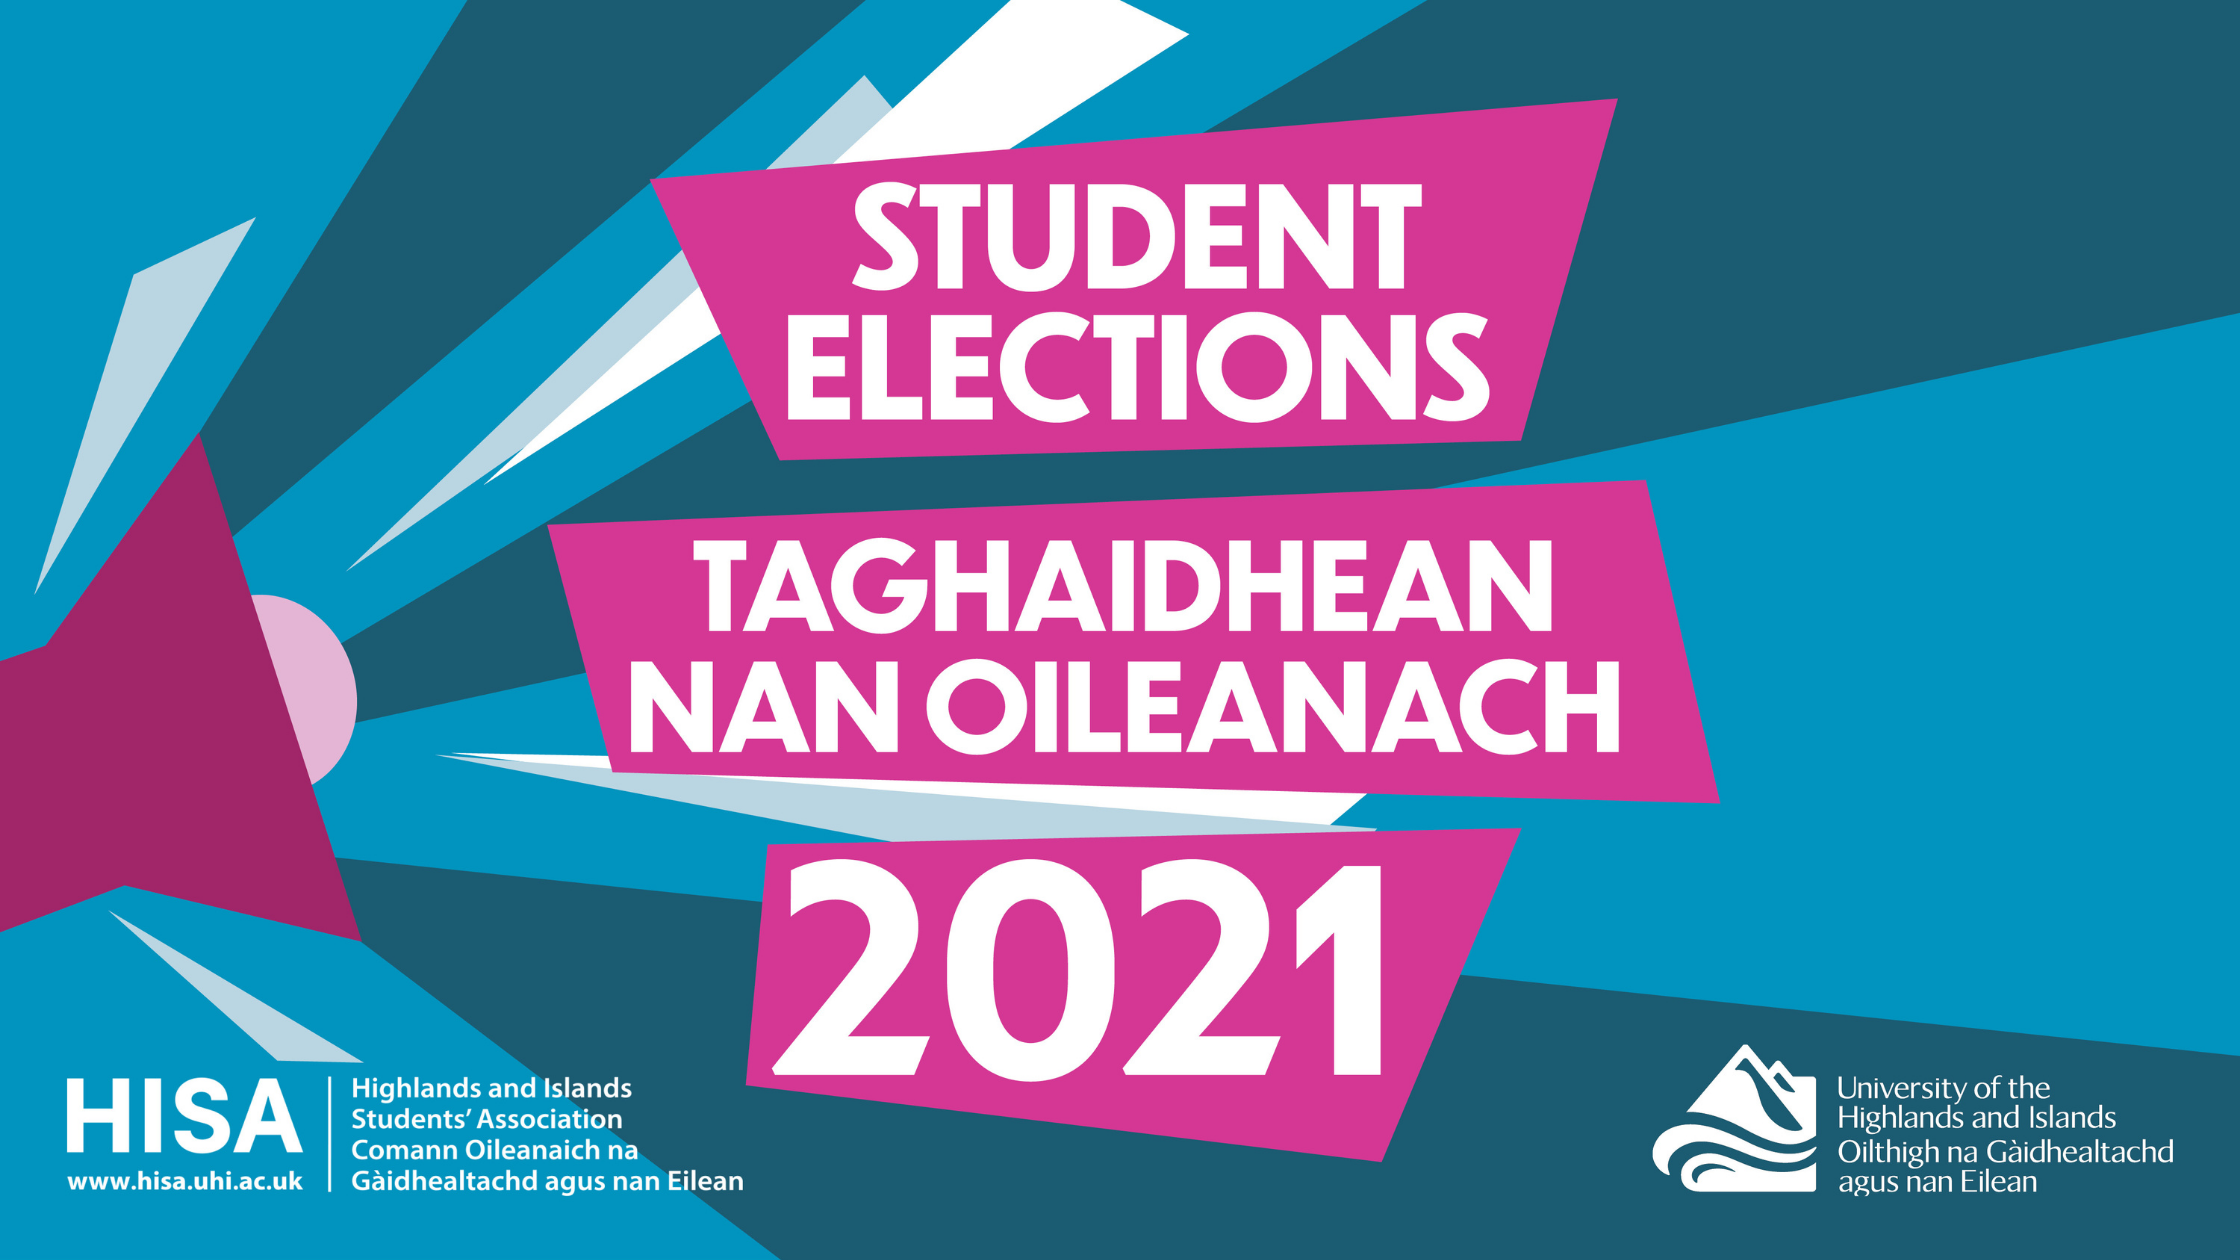 Student elections web banner